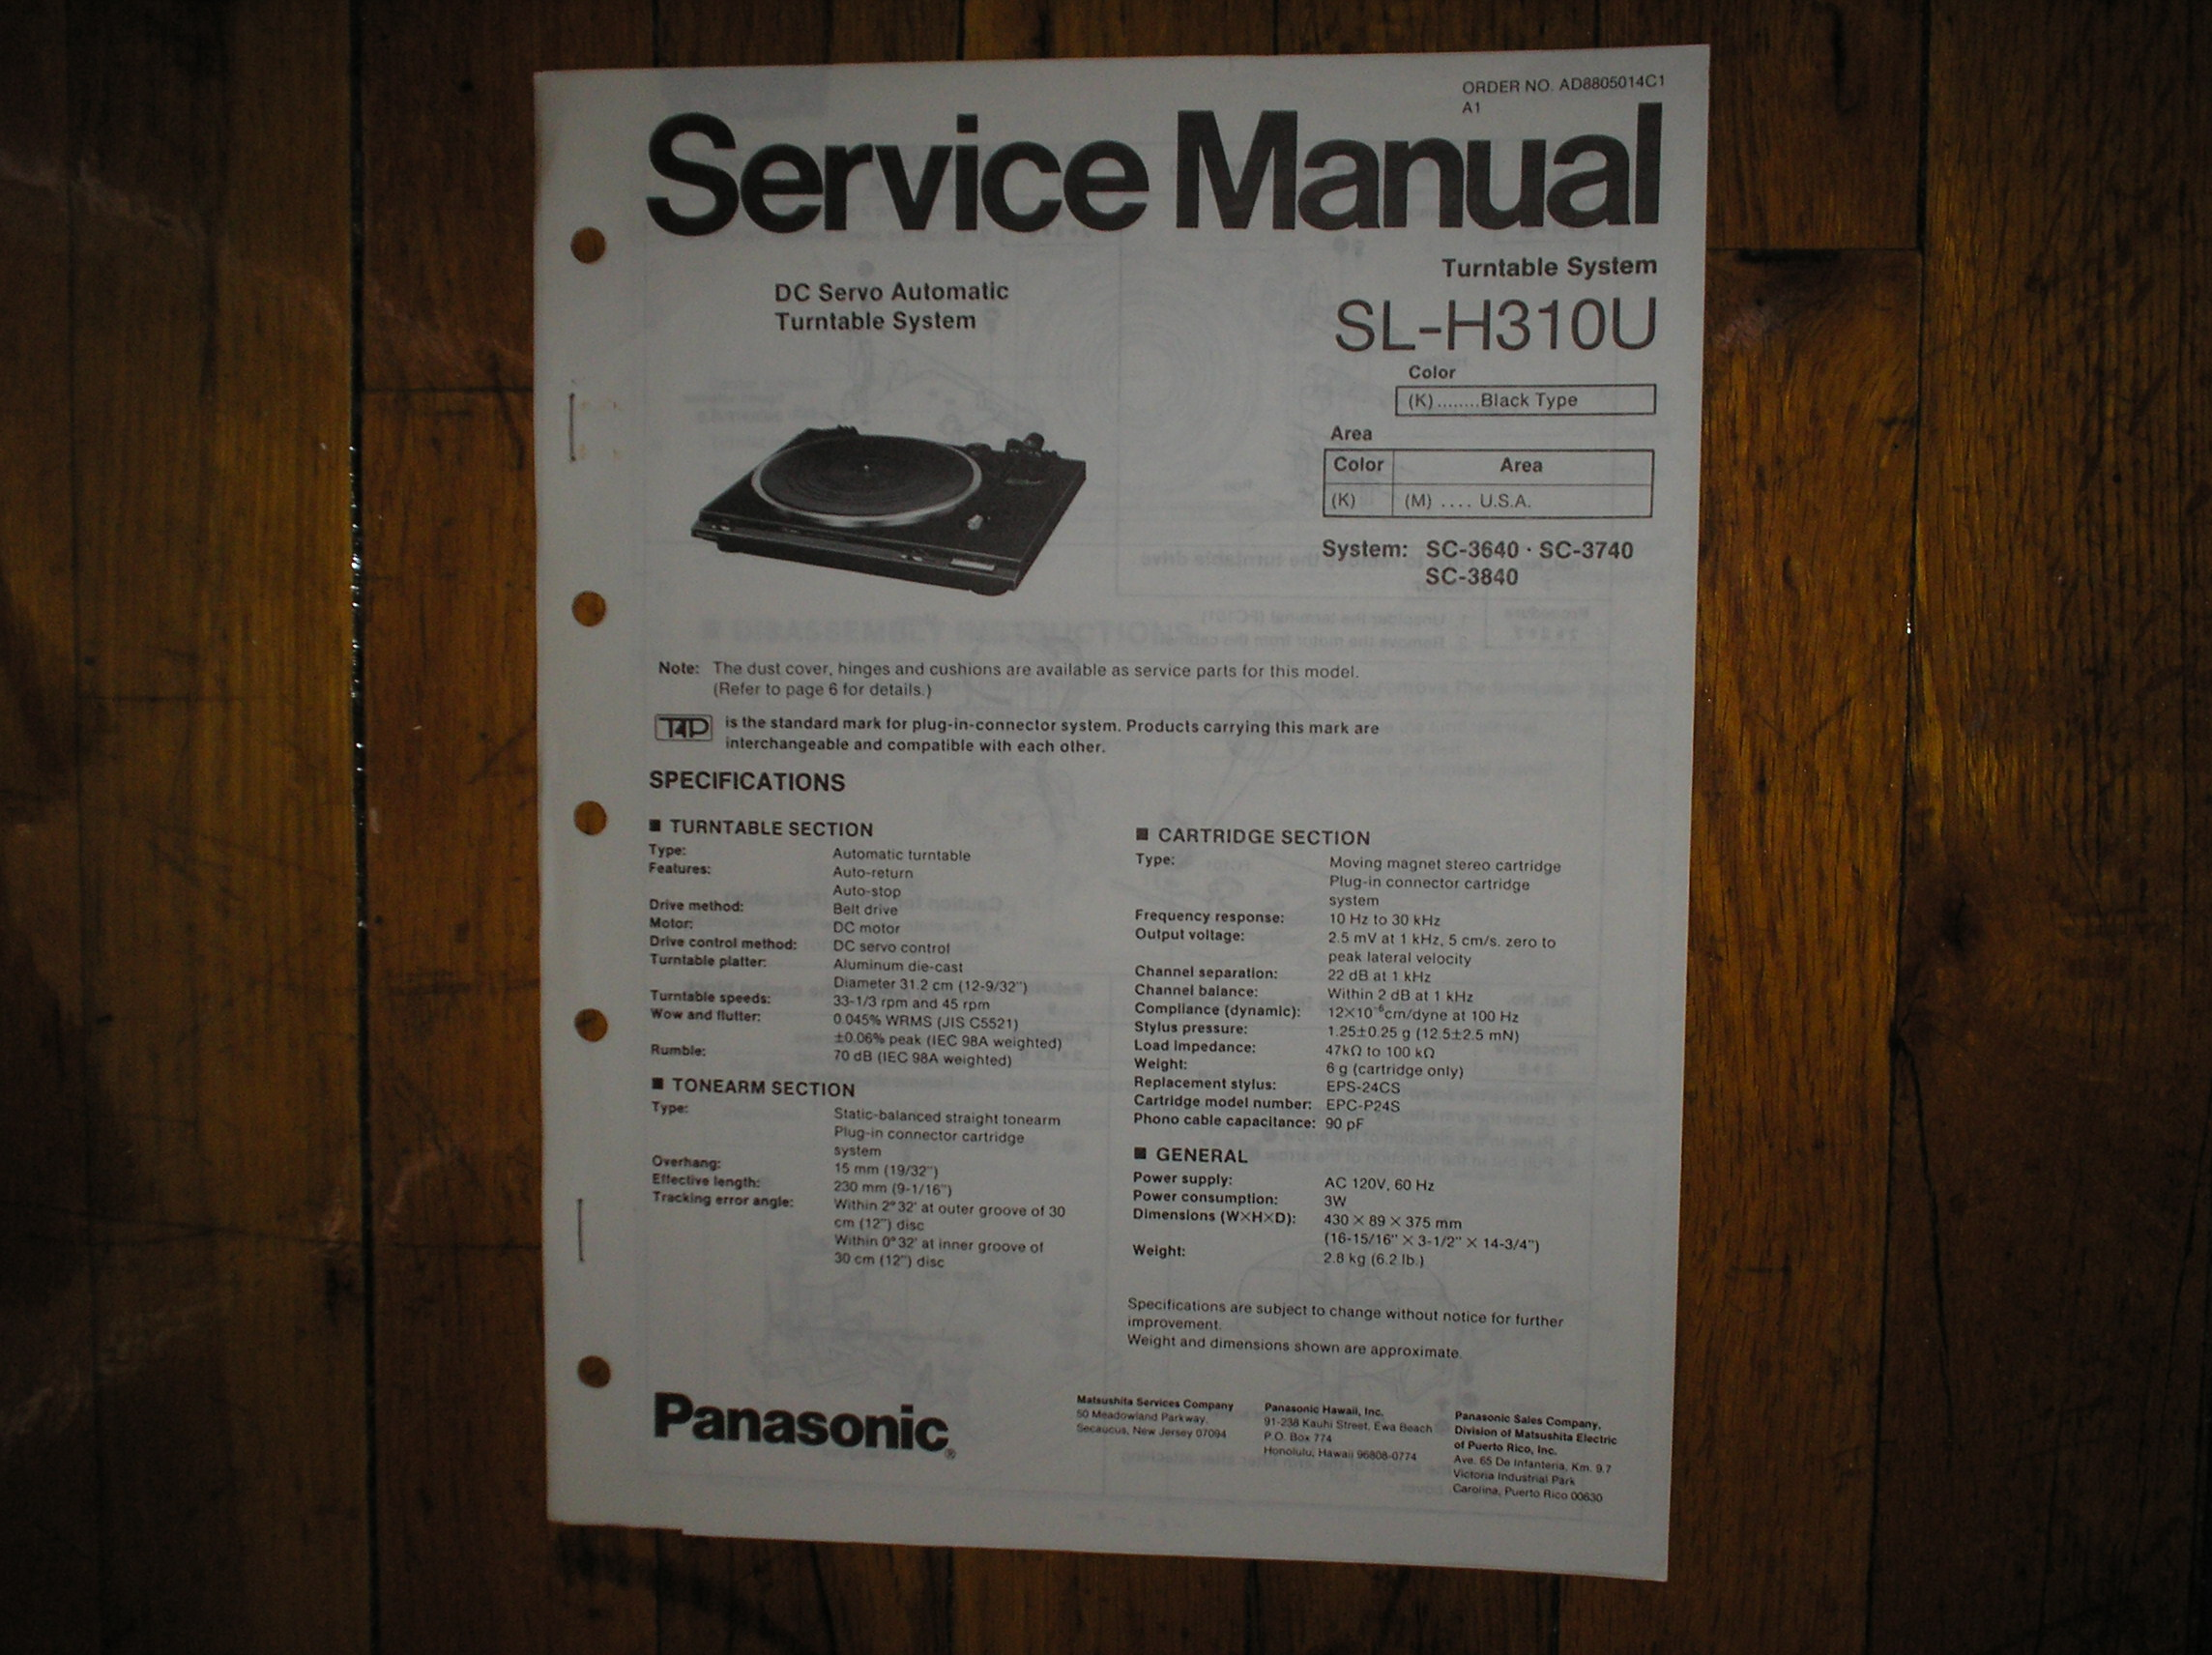 SL-H310U Turntable Service Manual